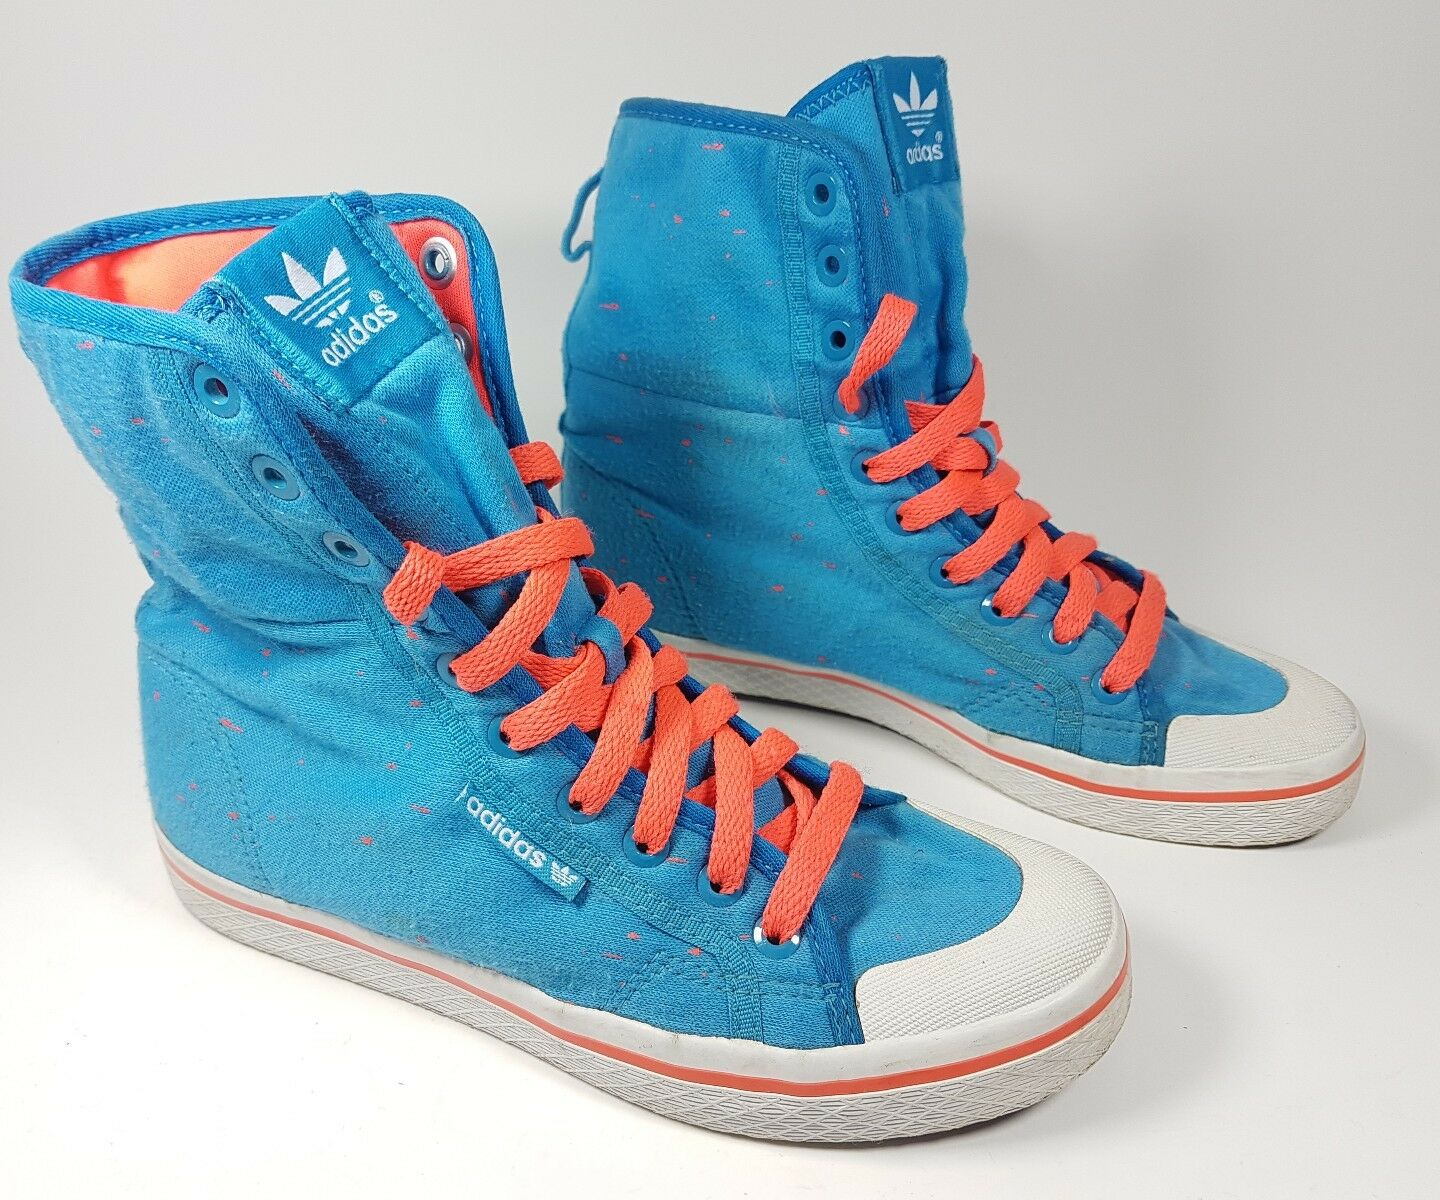 Adidas Bleu Hi Top Baskets UK 4 EU 36.5